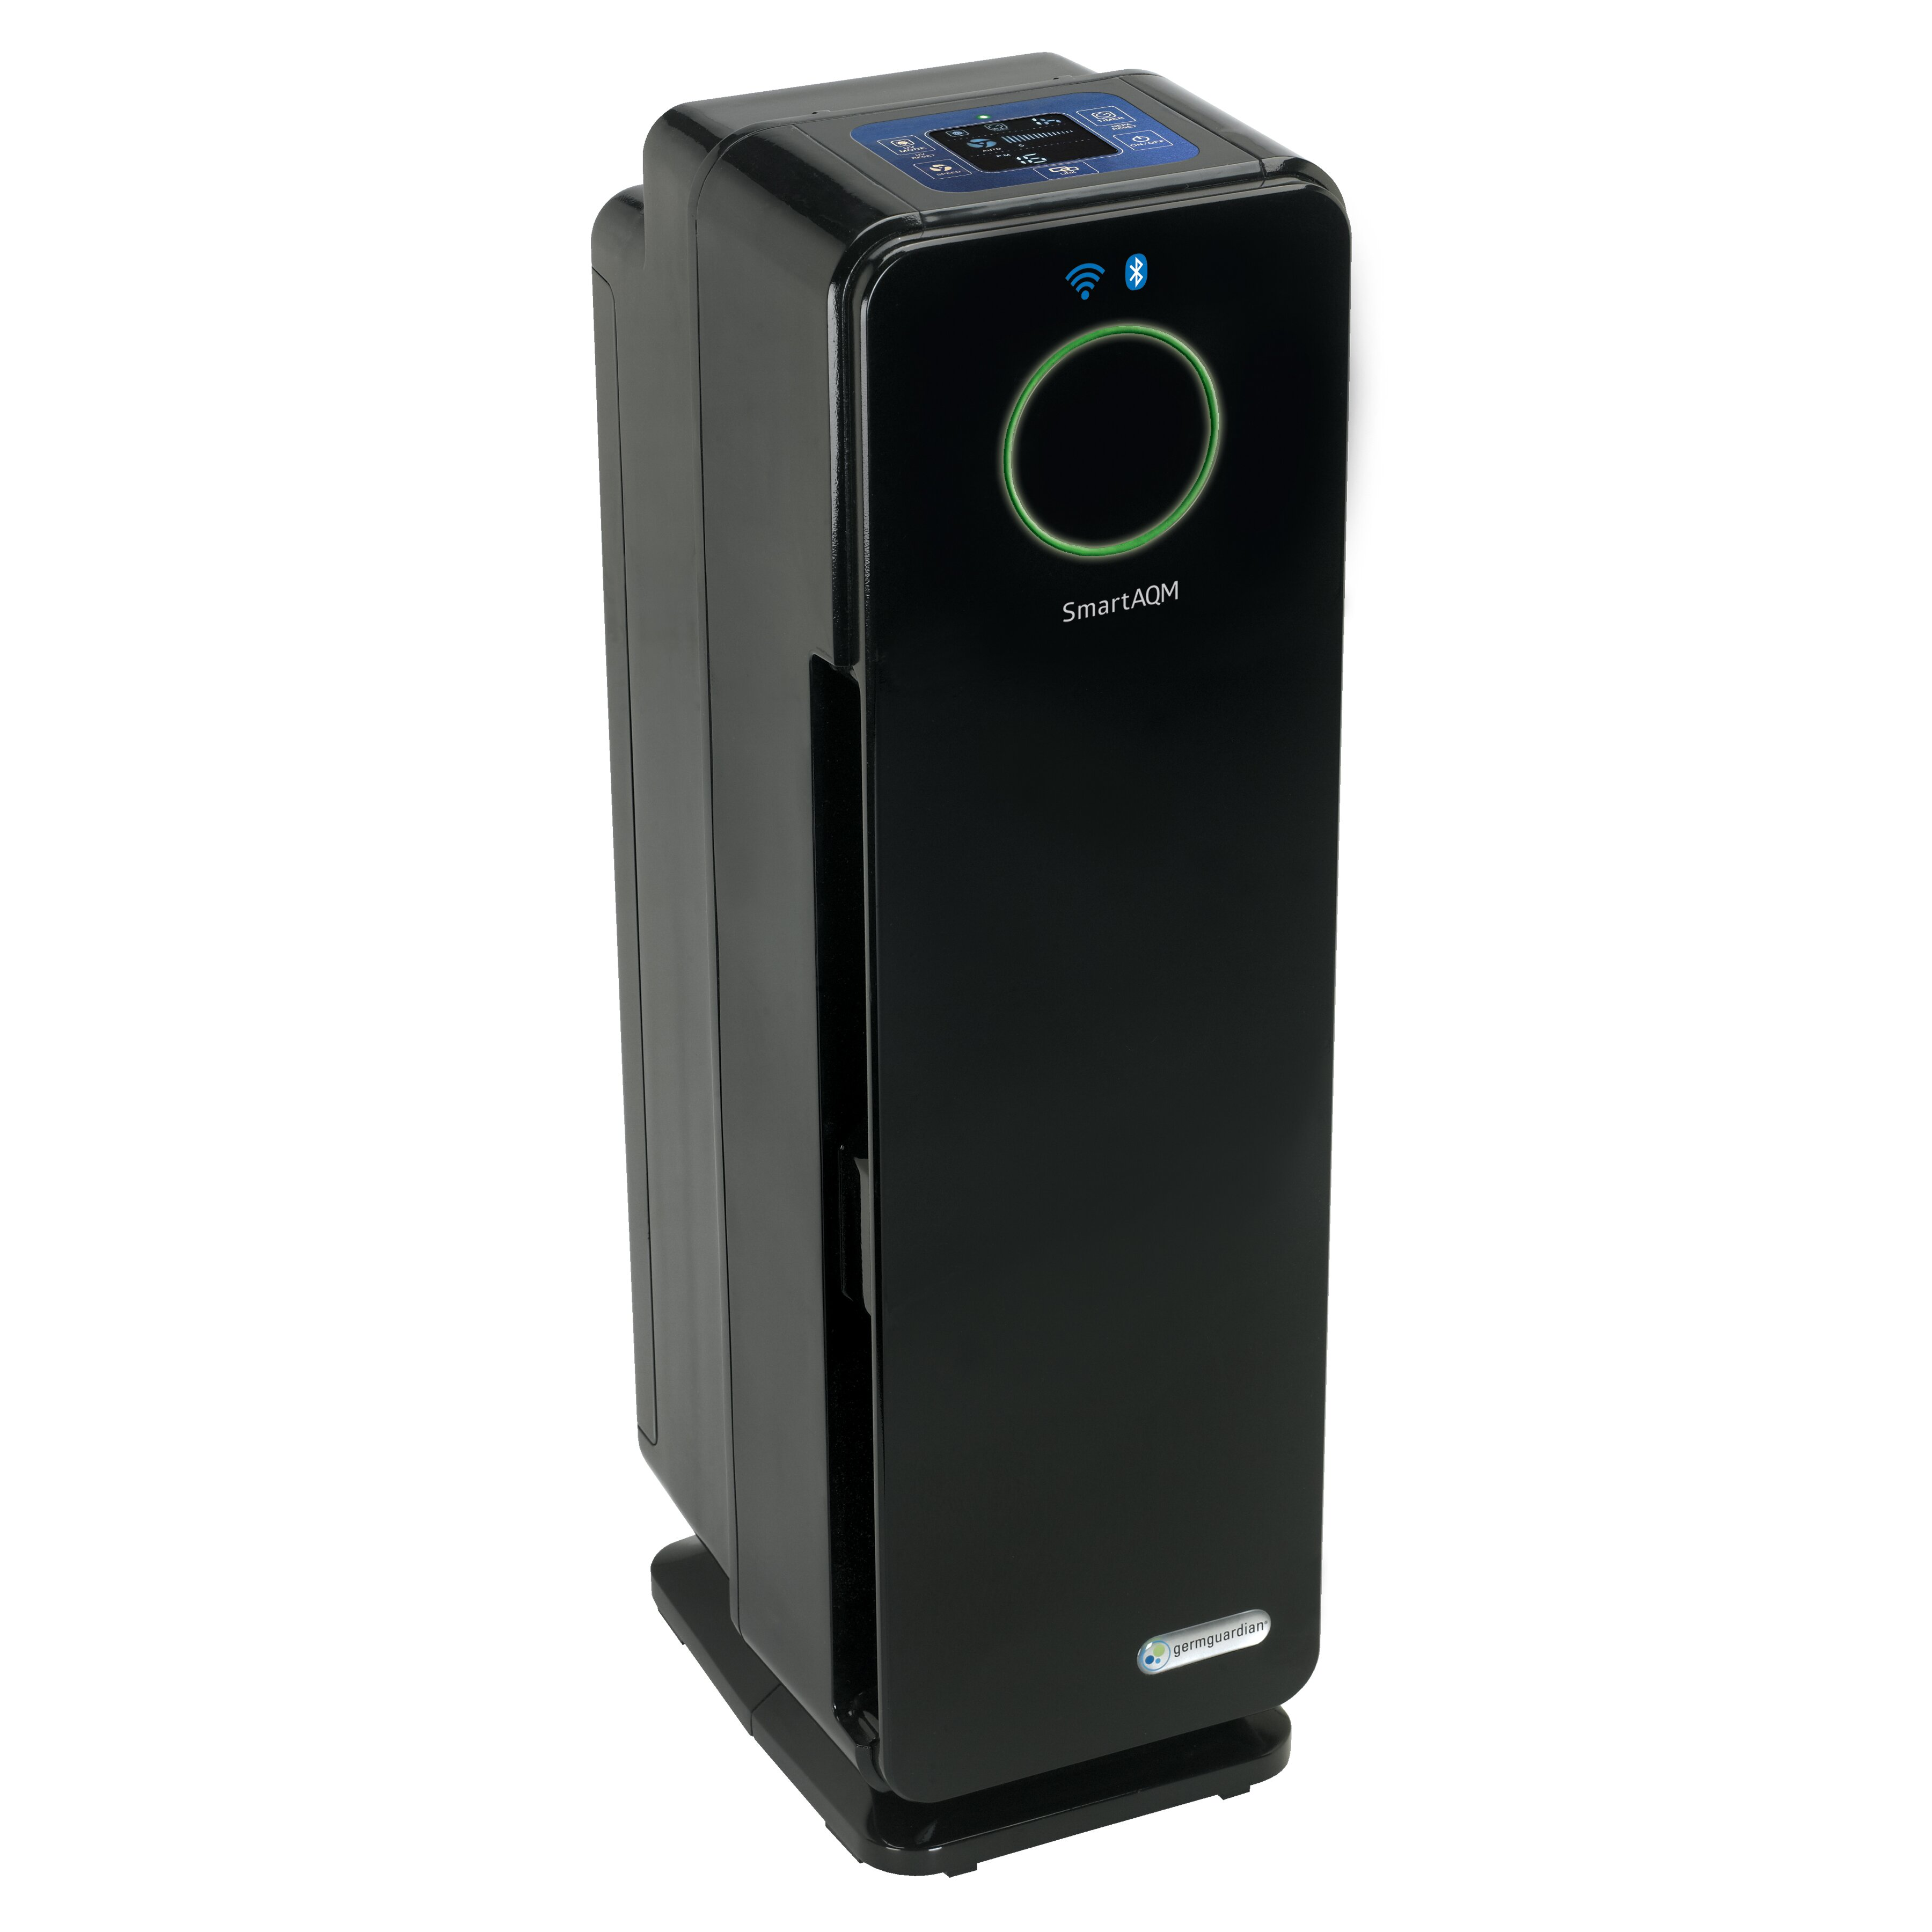 Portable Hepa Air Purifiers : Guardian technologies elite portable hepa air purifier